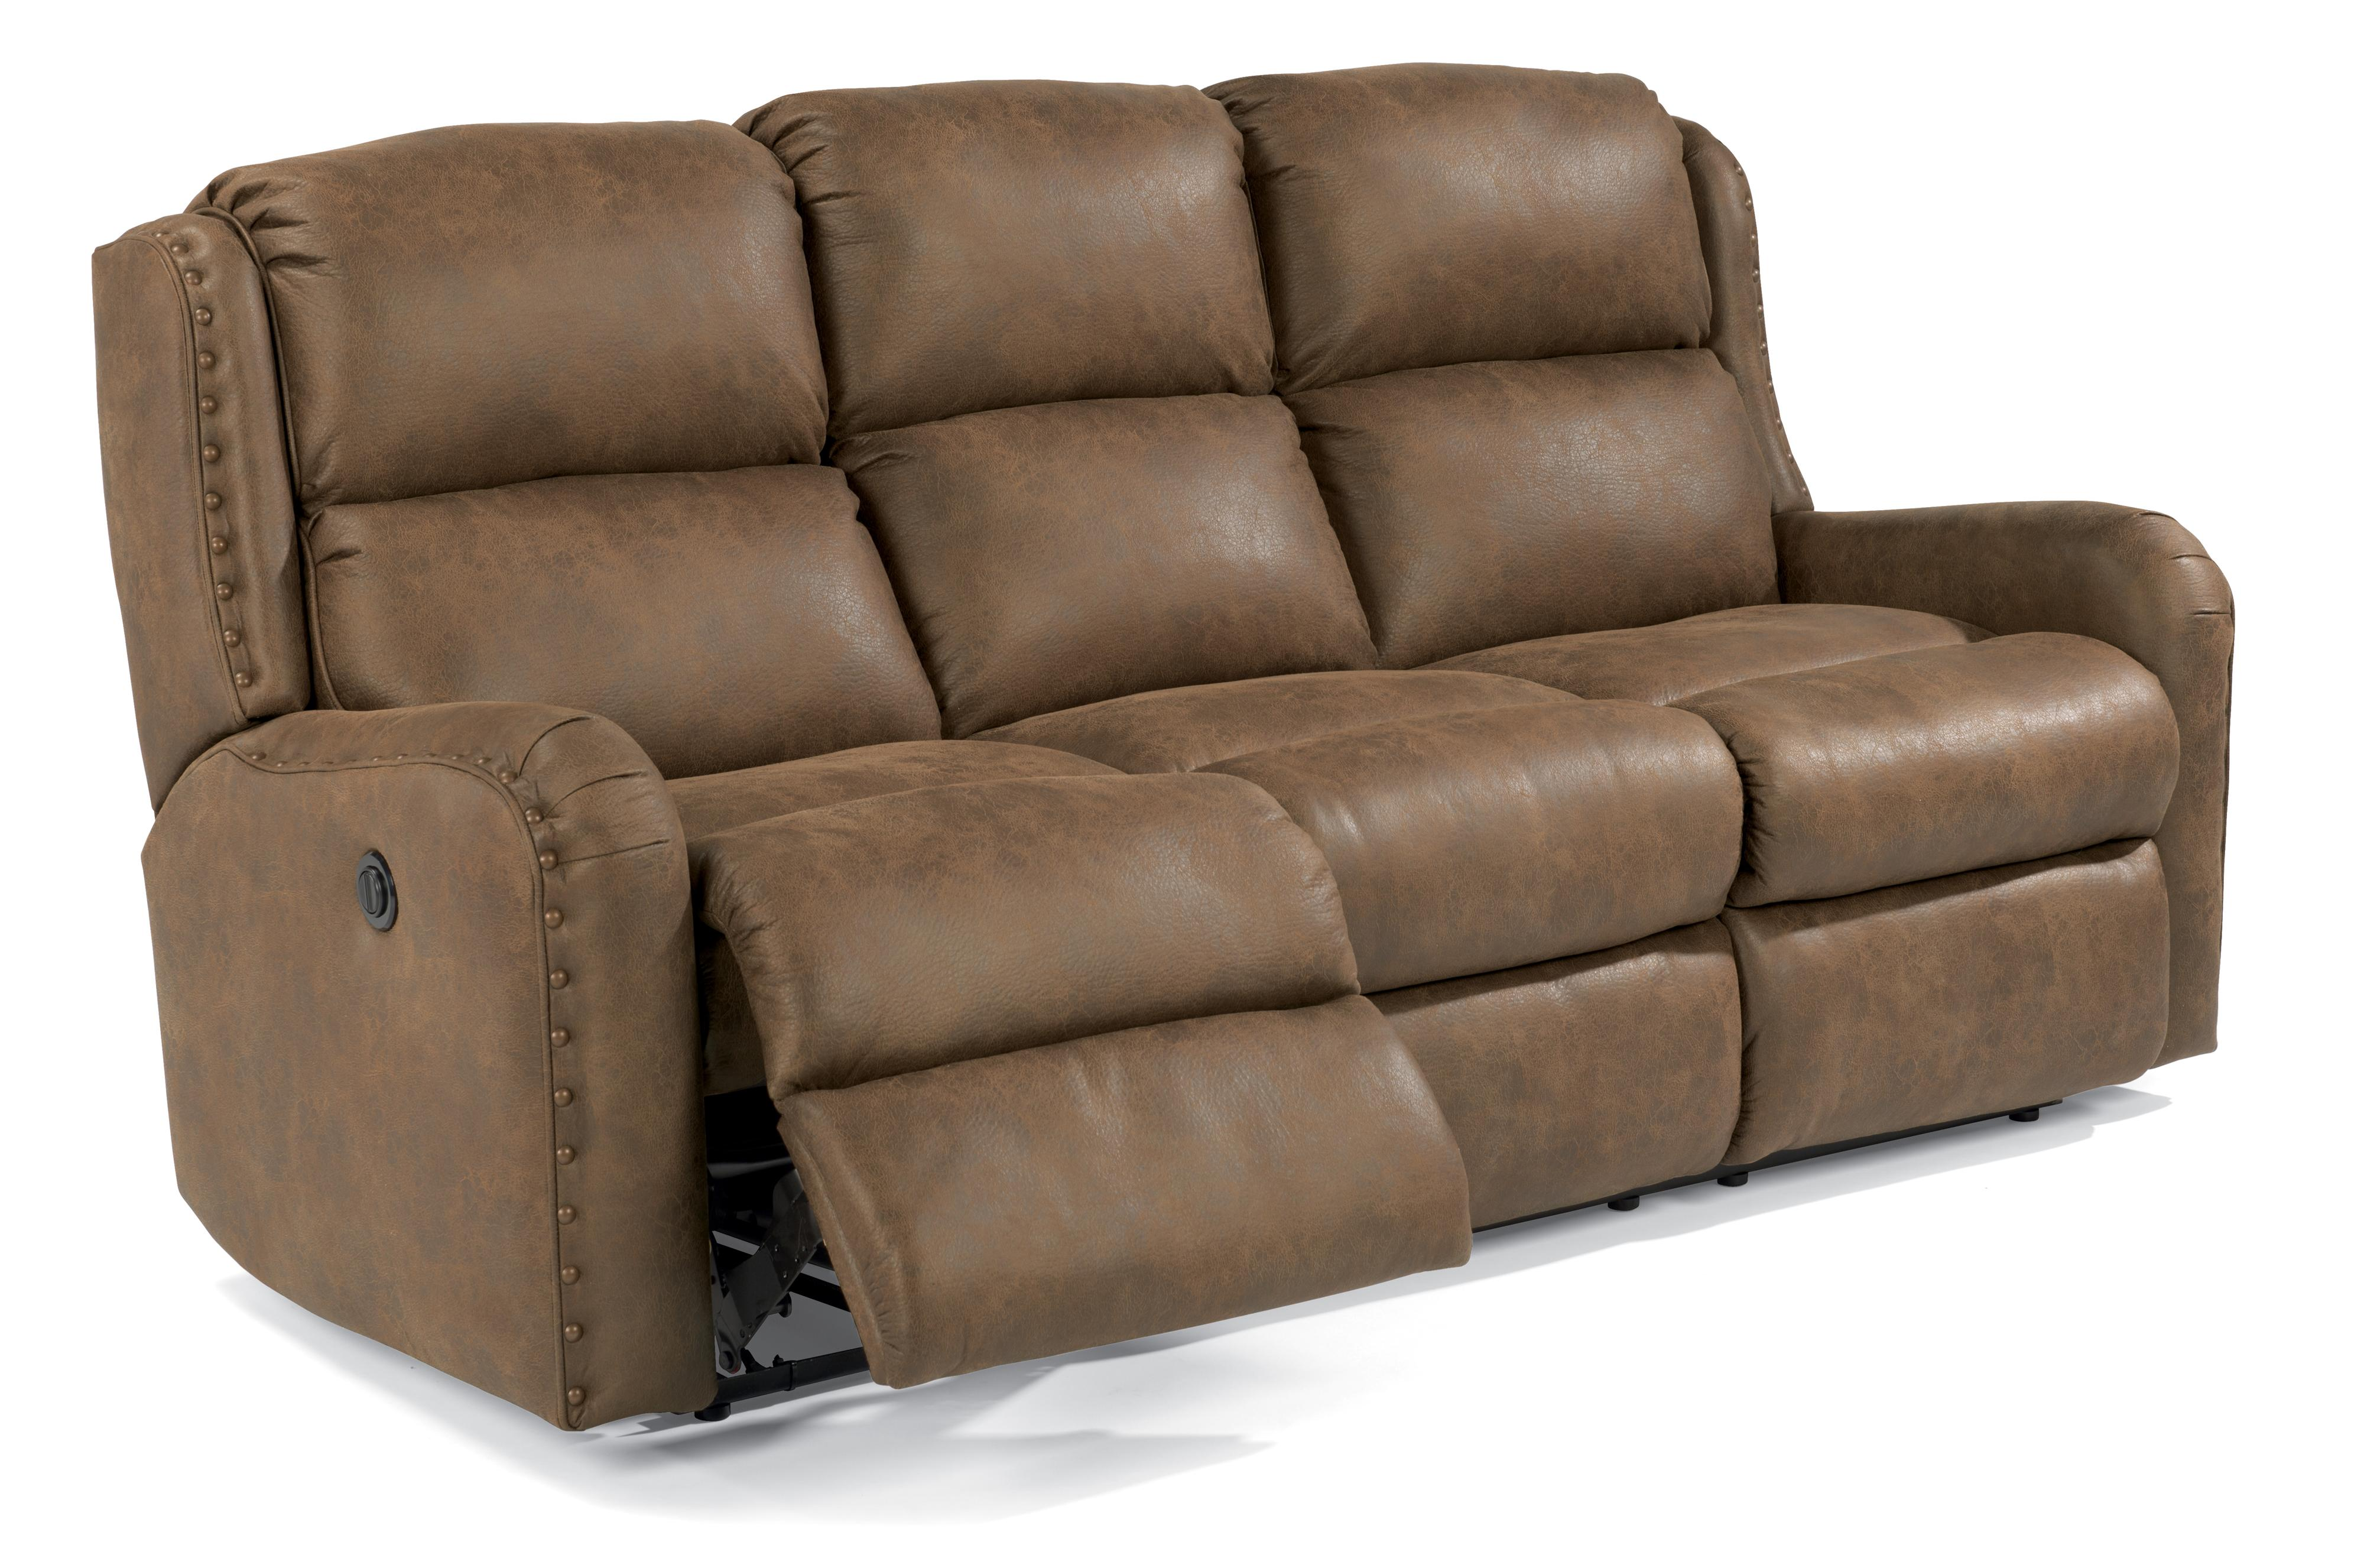 Flexsteel Cameron Power Reclining Sofa - Item Number: 4892-62M-727-80